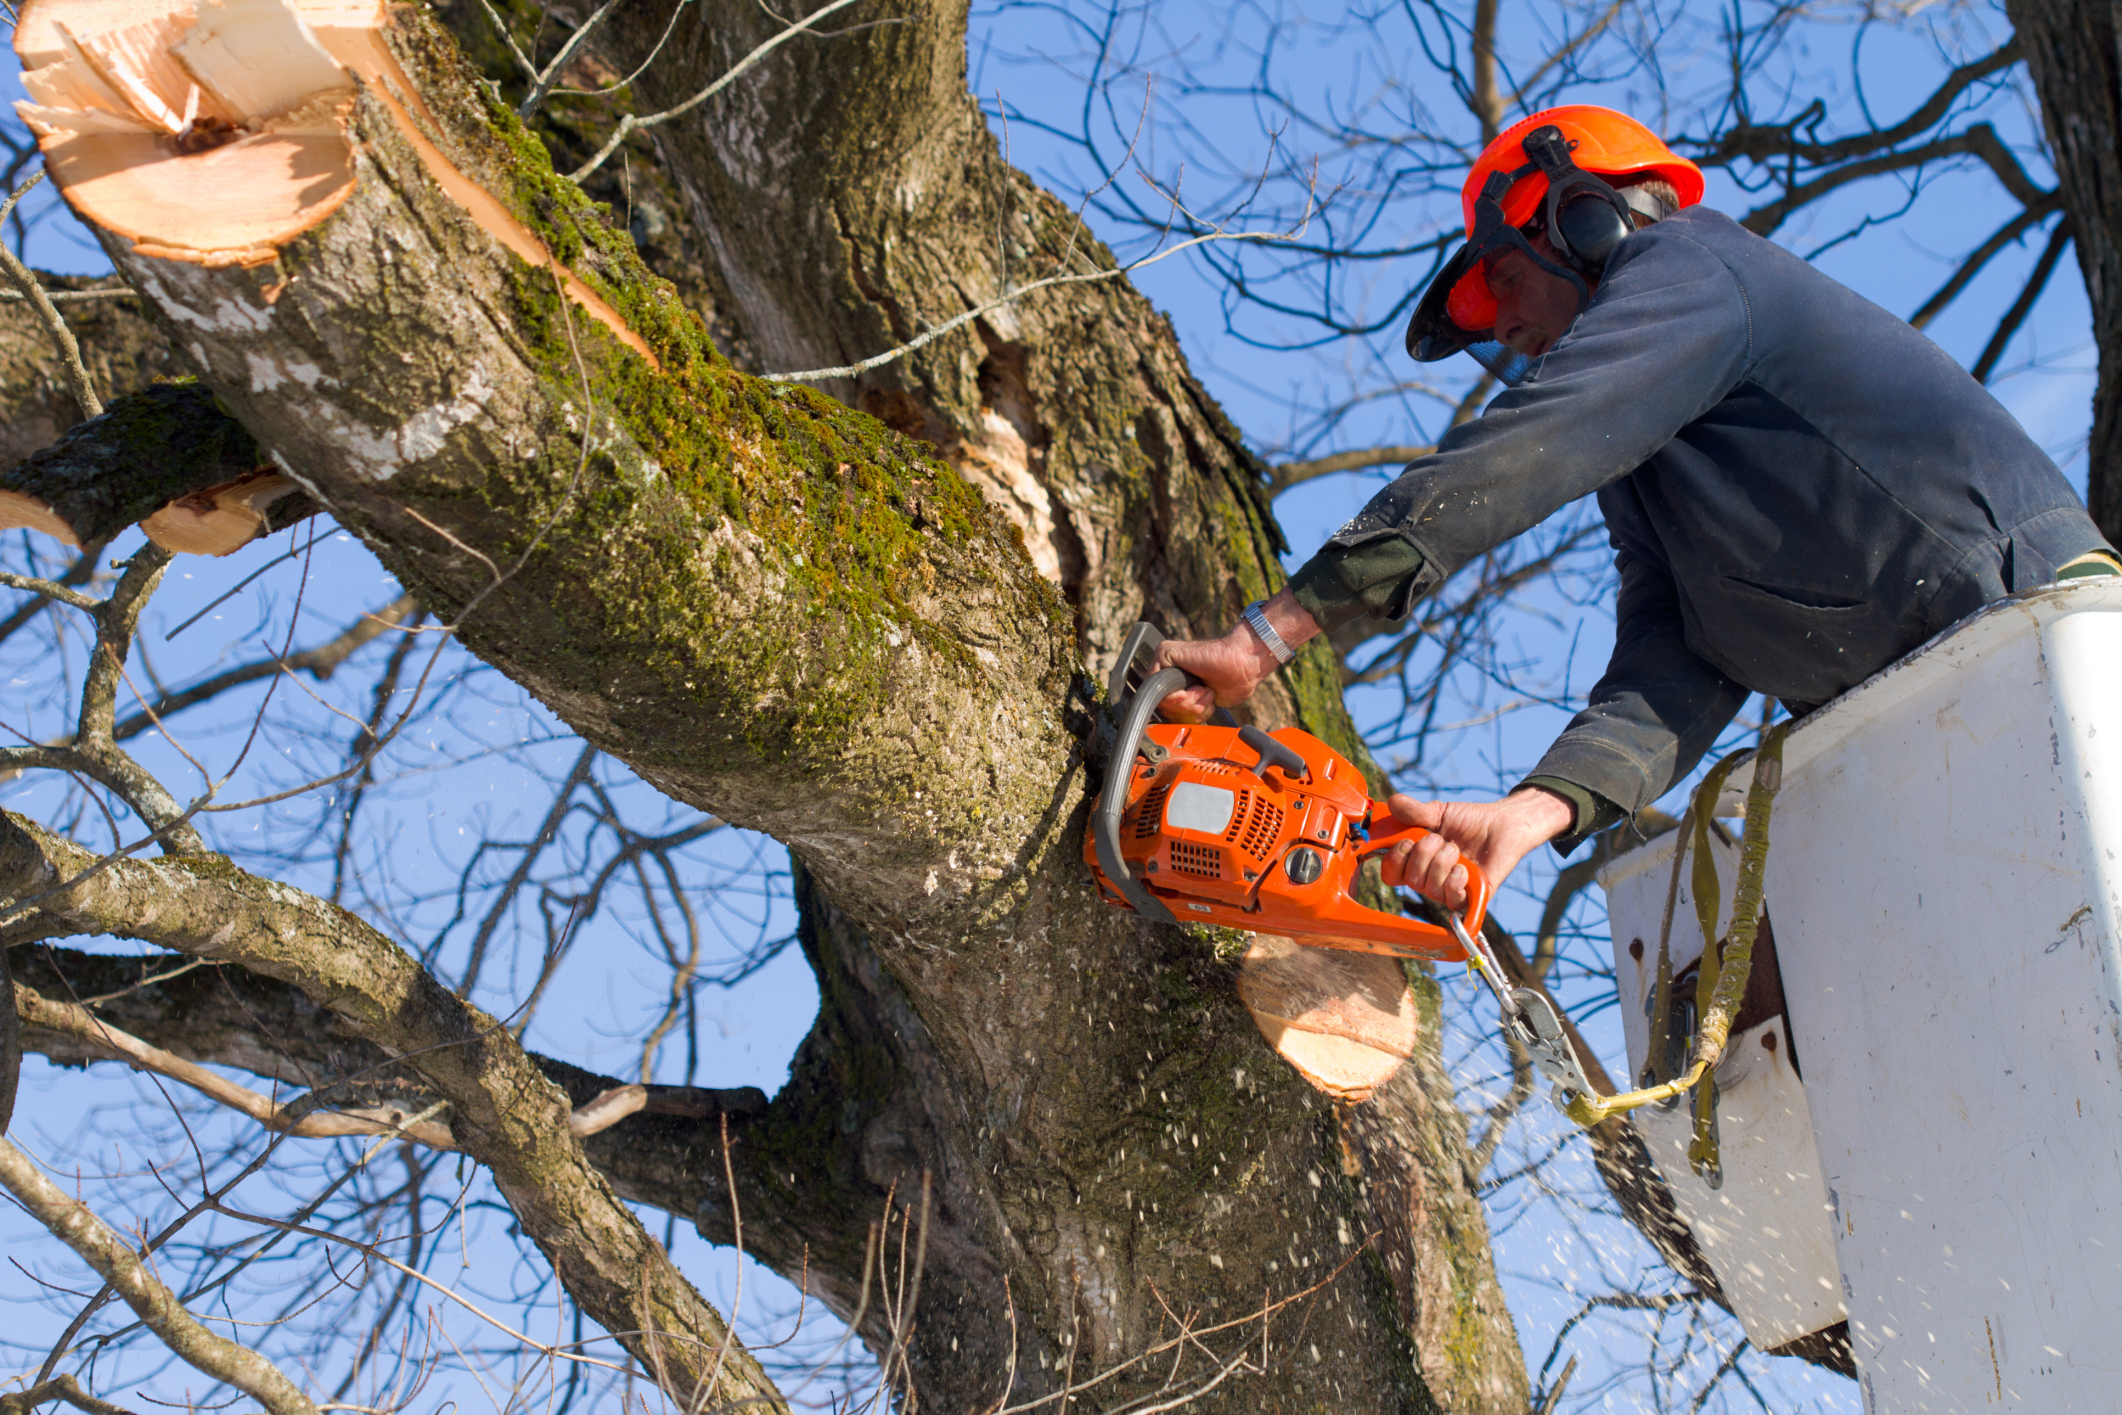 Man using a chainsaw to cut down a large tree limb.